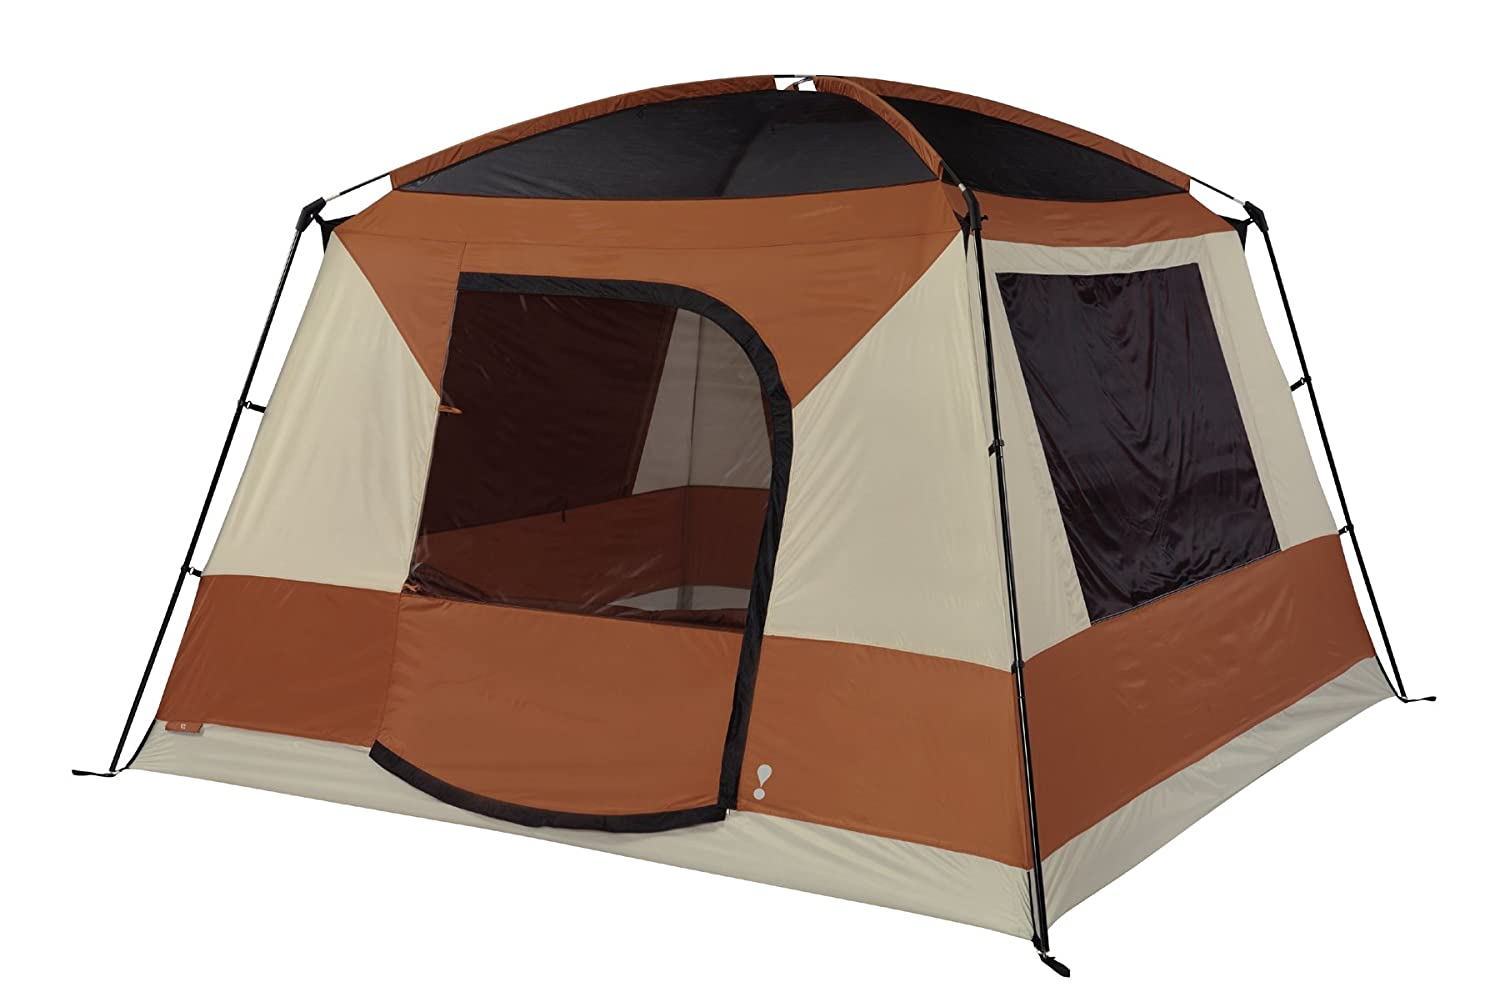 Amazon.com  Eureka! Copper Canyon 10 - Tent (sleeps 5)  Family Tents  Sports u0026 Outdoors  sc 1 st  Amazon.com : eureka cabin tent - memphite.com